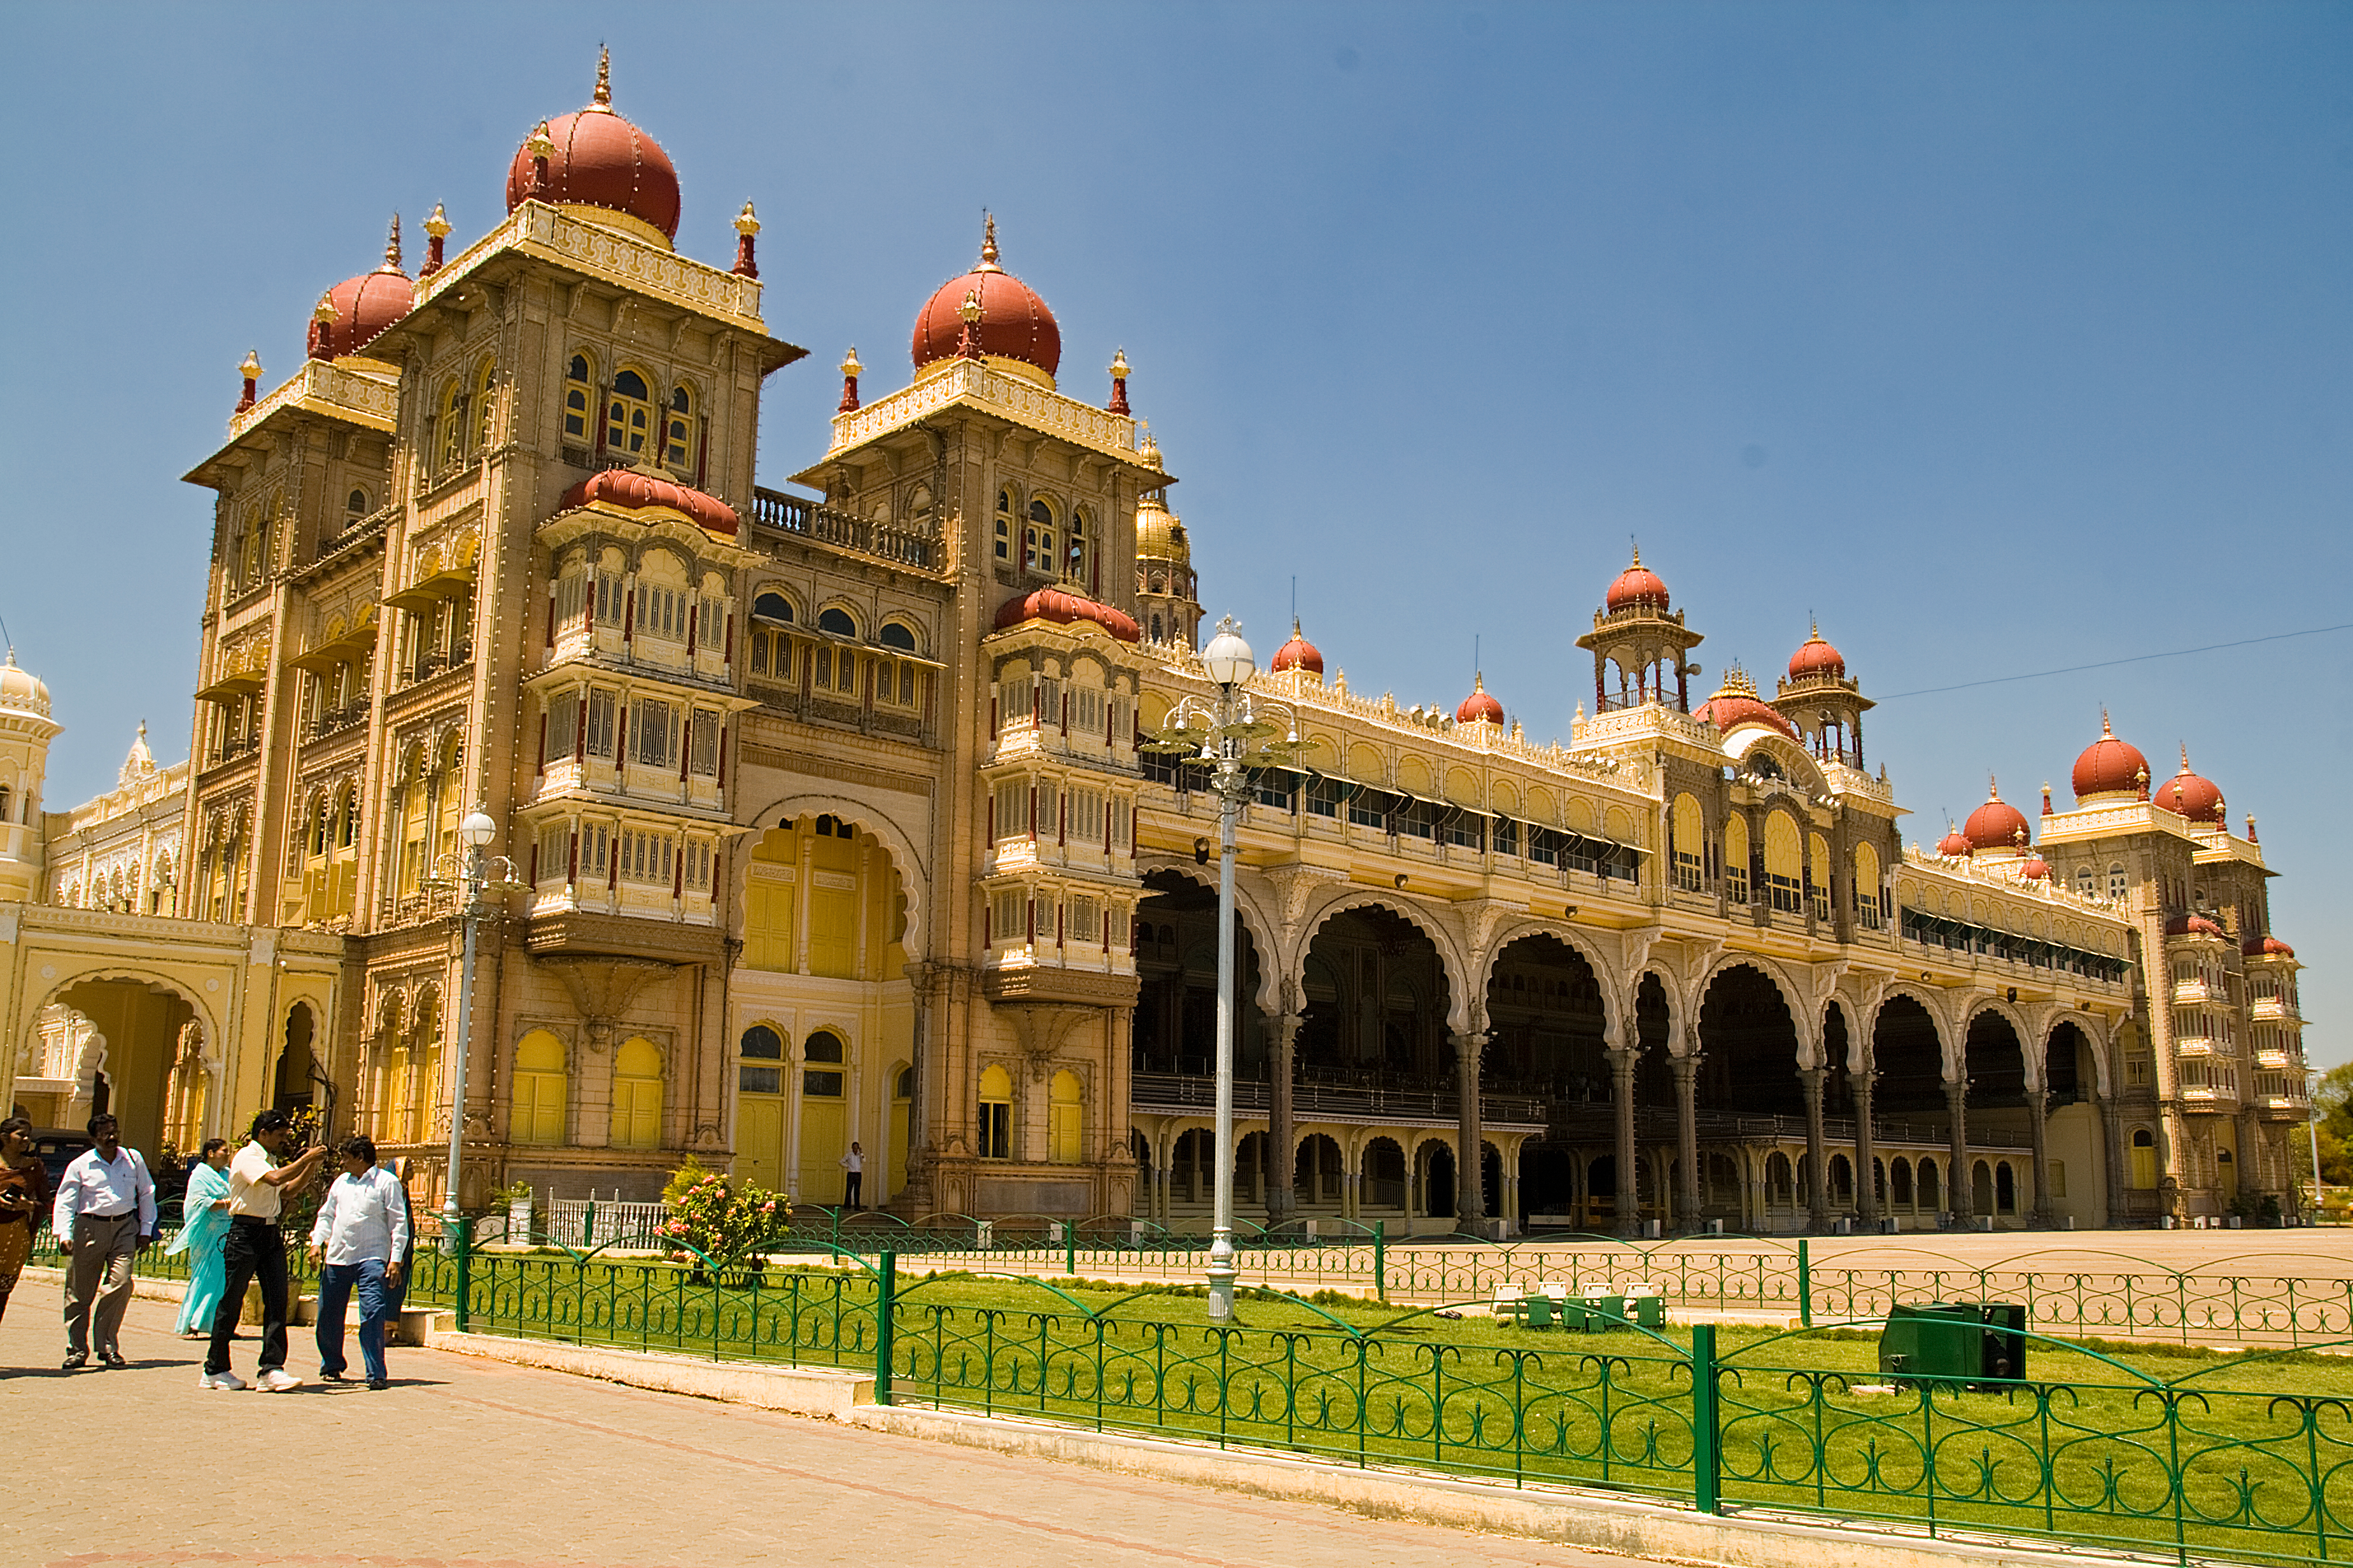 History and description of the Bakhchsarai Palace. Khans Palace in Bakhchisarai